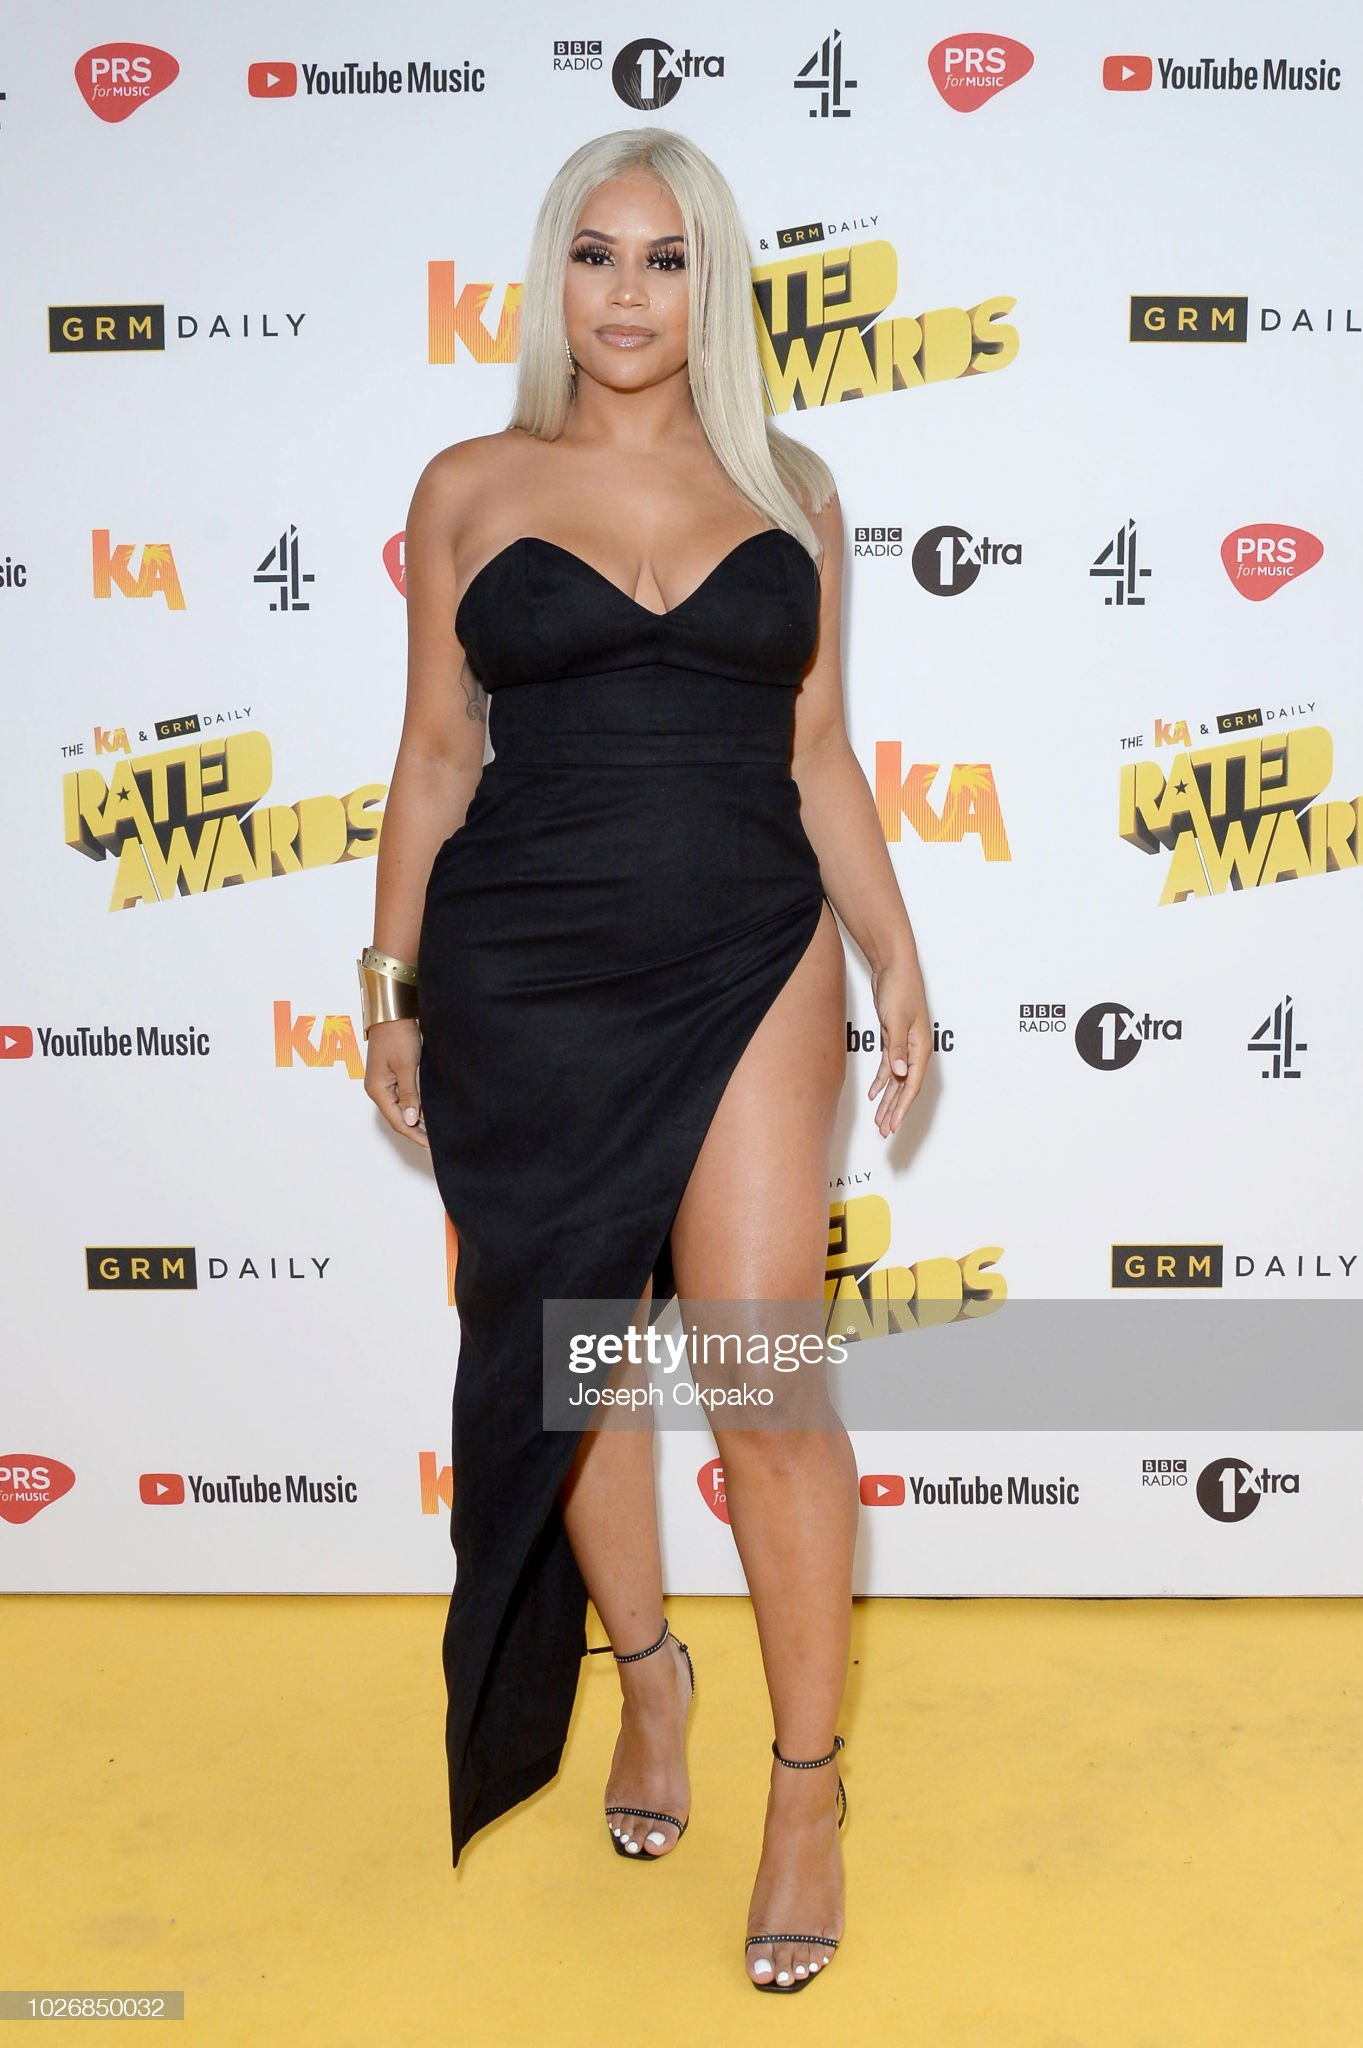 ¿Cuánto mide Lateysha Grace? - Real height Lateysha-grace-attends-uk-grime-and-hip-hop-event-the-ka-grm-daily-picture-id1026850032?s=2048x2048